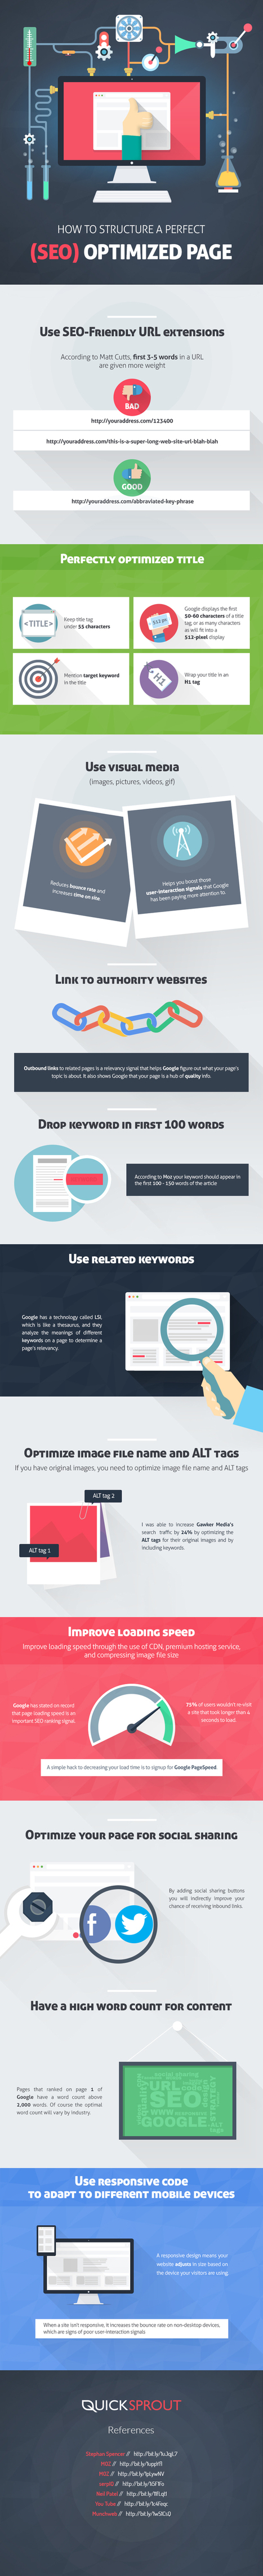 The Perfect On Page SEO Checklist for 2016 [Infographic] | CURTO | Scoop.it